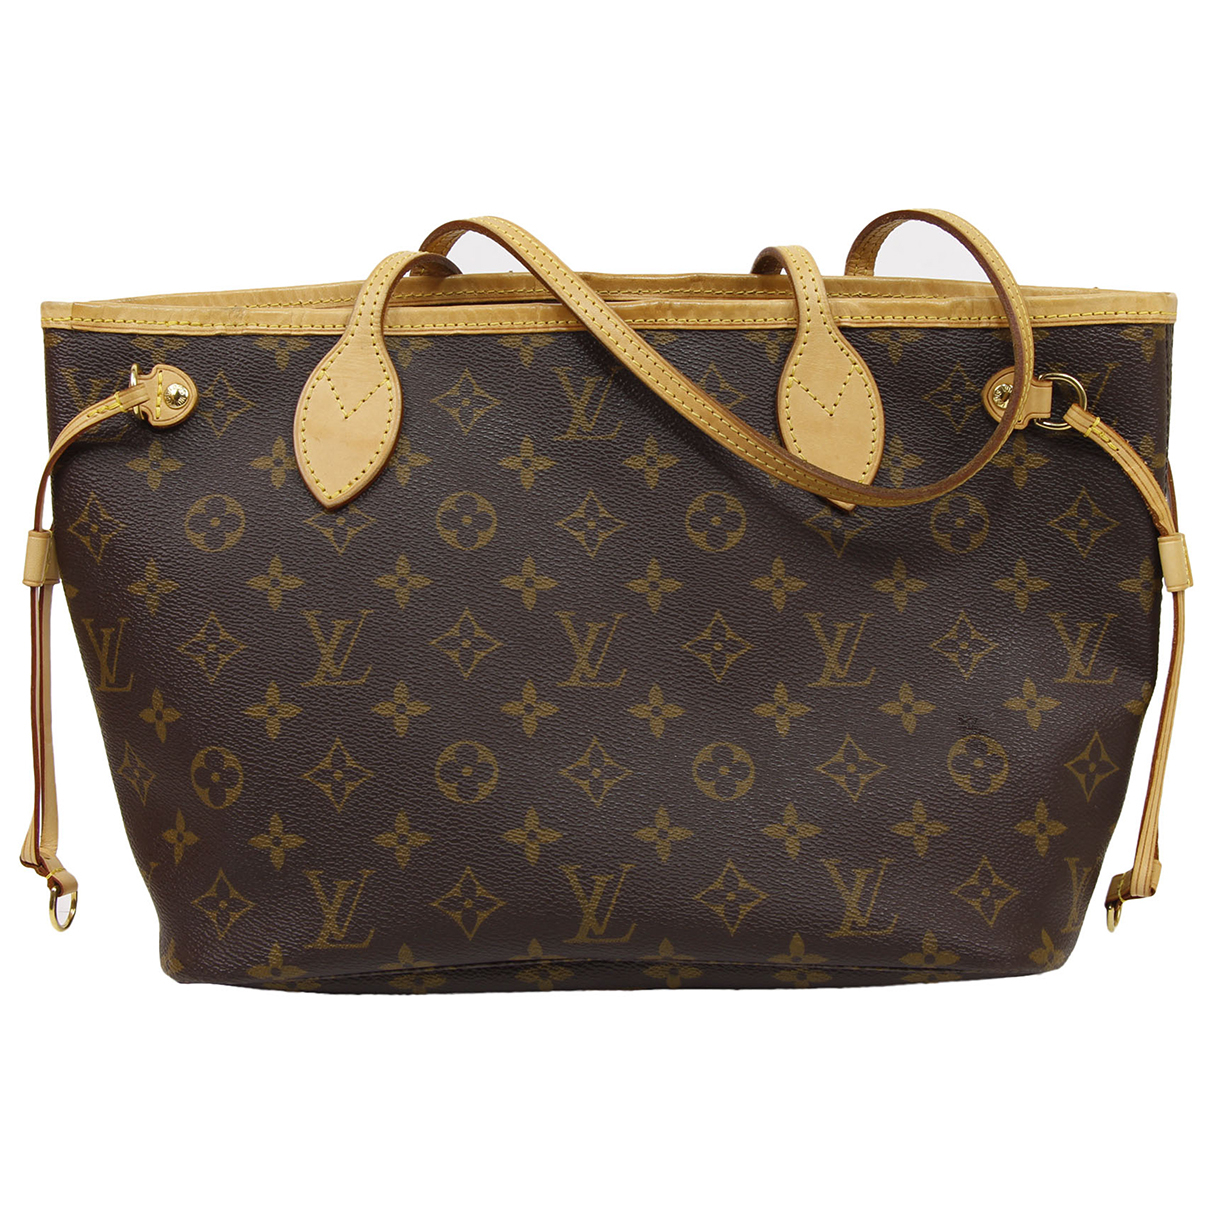 Cabas Neverfull de Lona Louis Vuitton